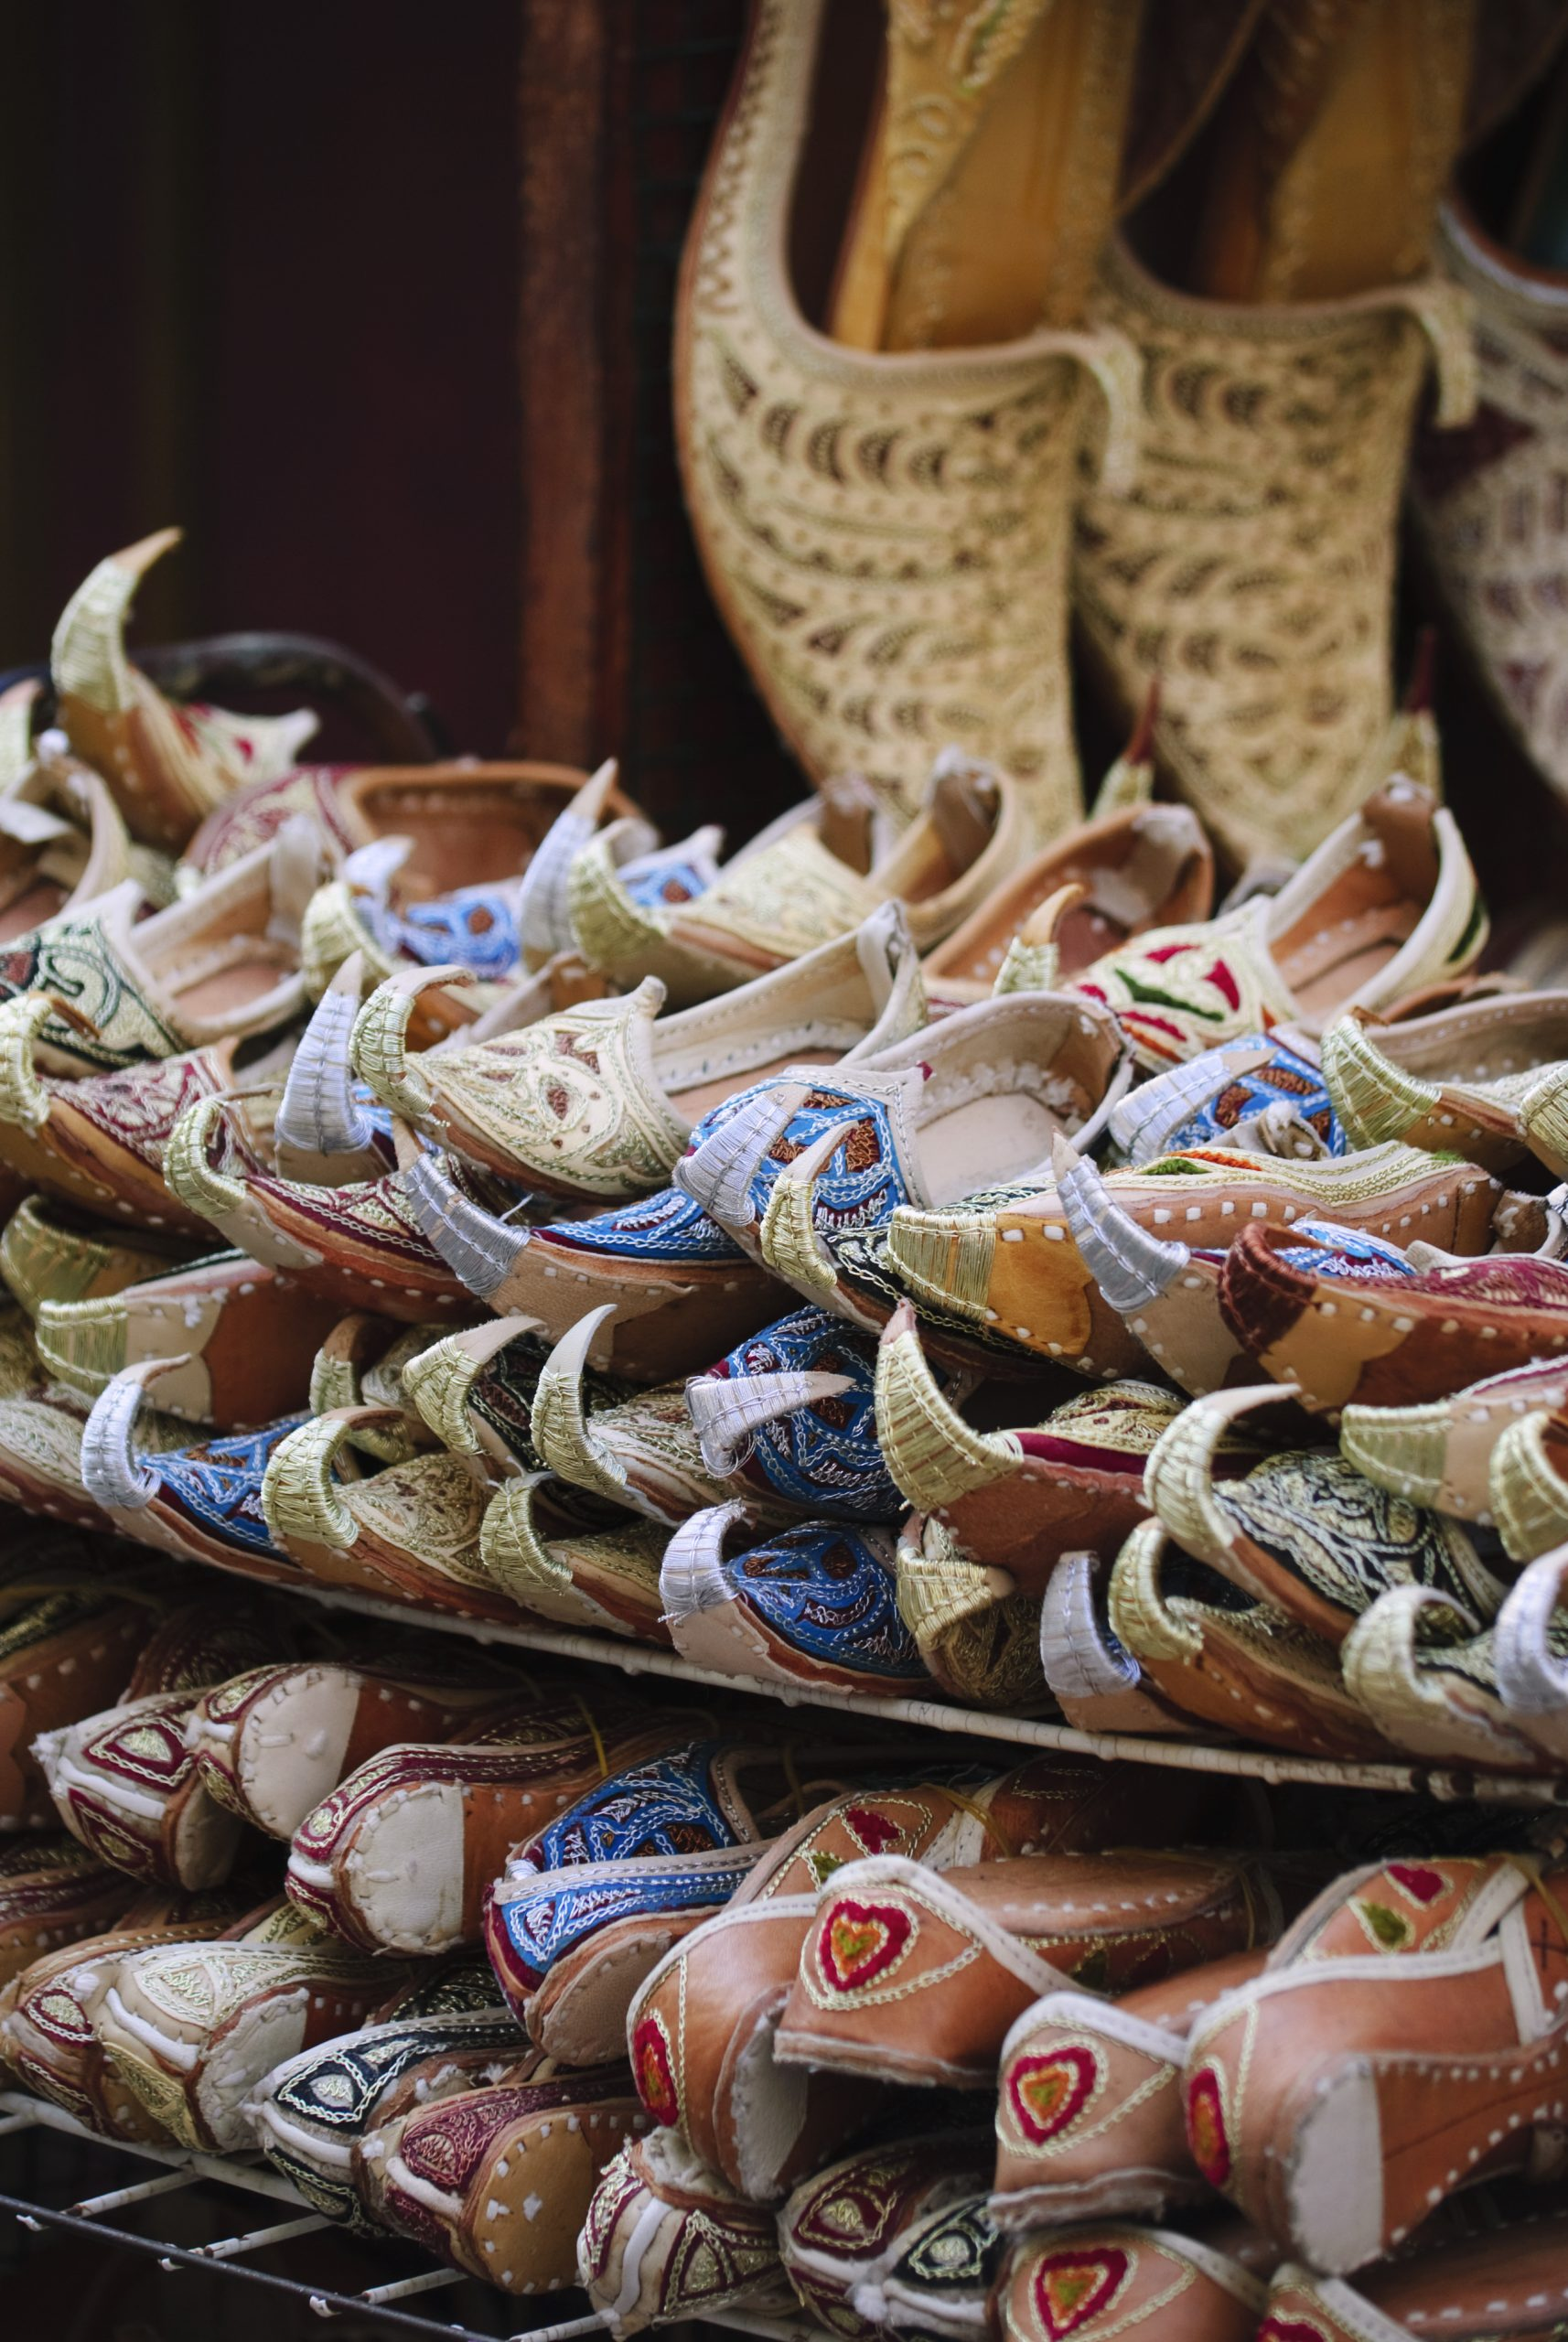 arabic shoes selling at old souk in dubai